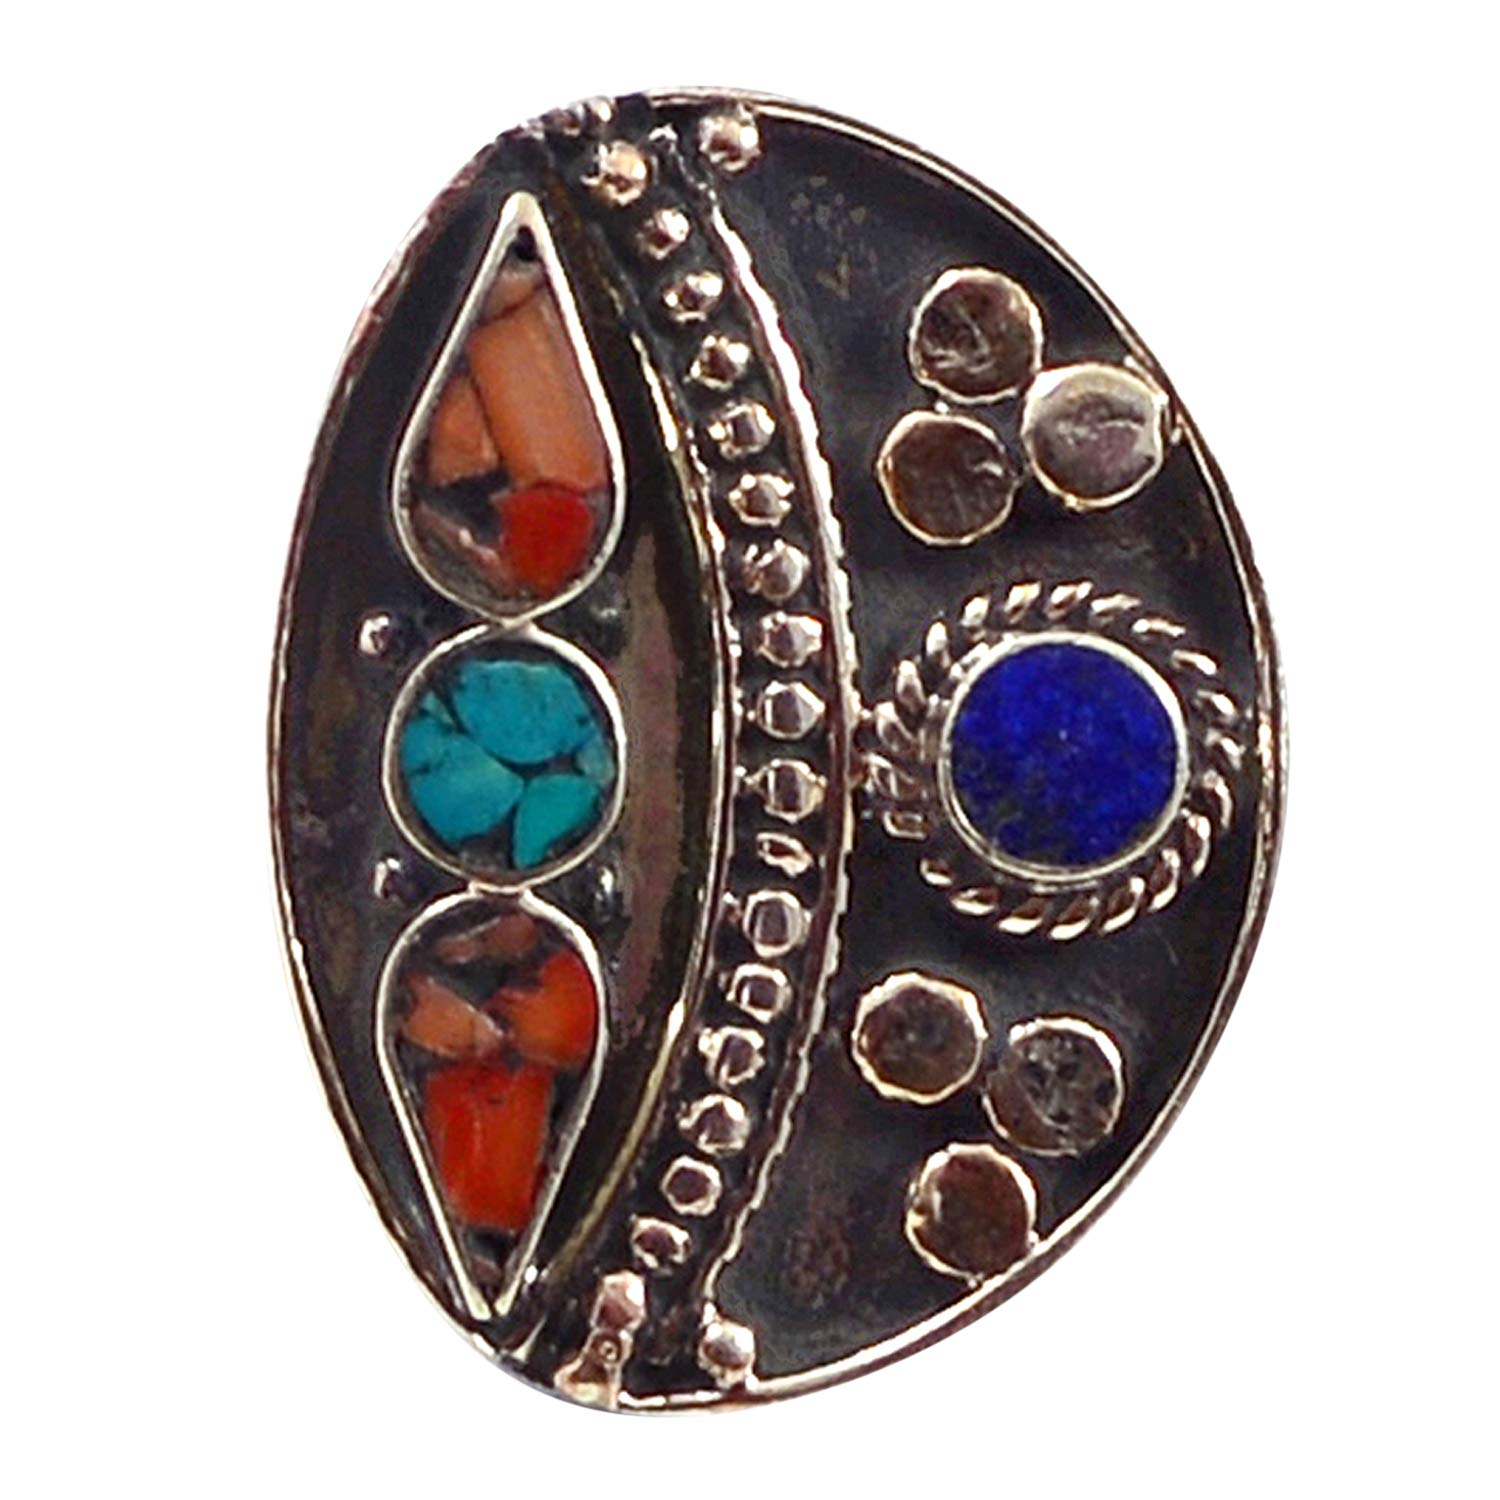 Turquoise /& Lapis Lazuli 925 Silver Plated Ring Sz 7 PG-117785 Saamarth Impex Coral